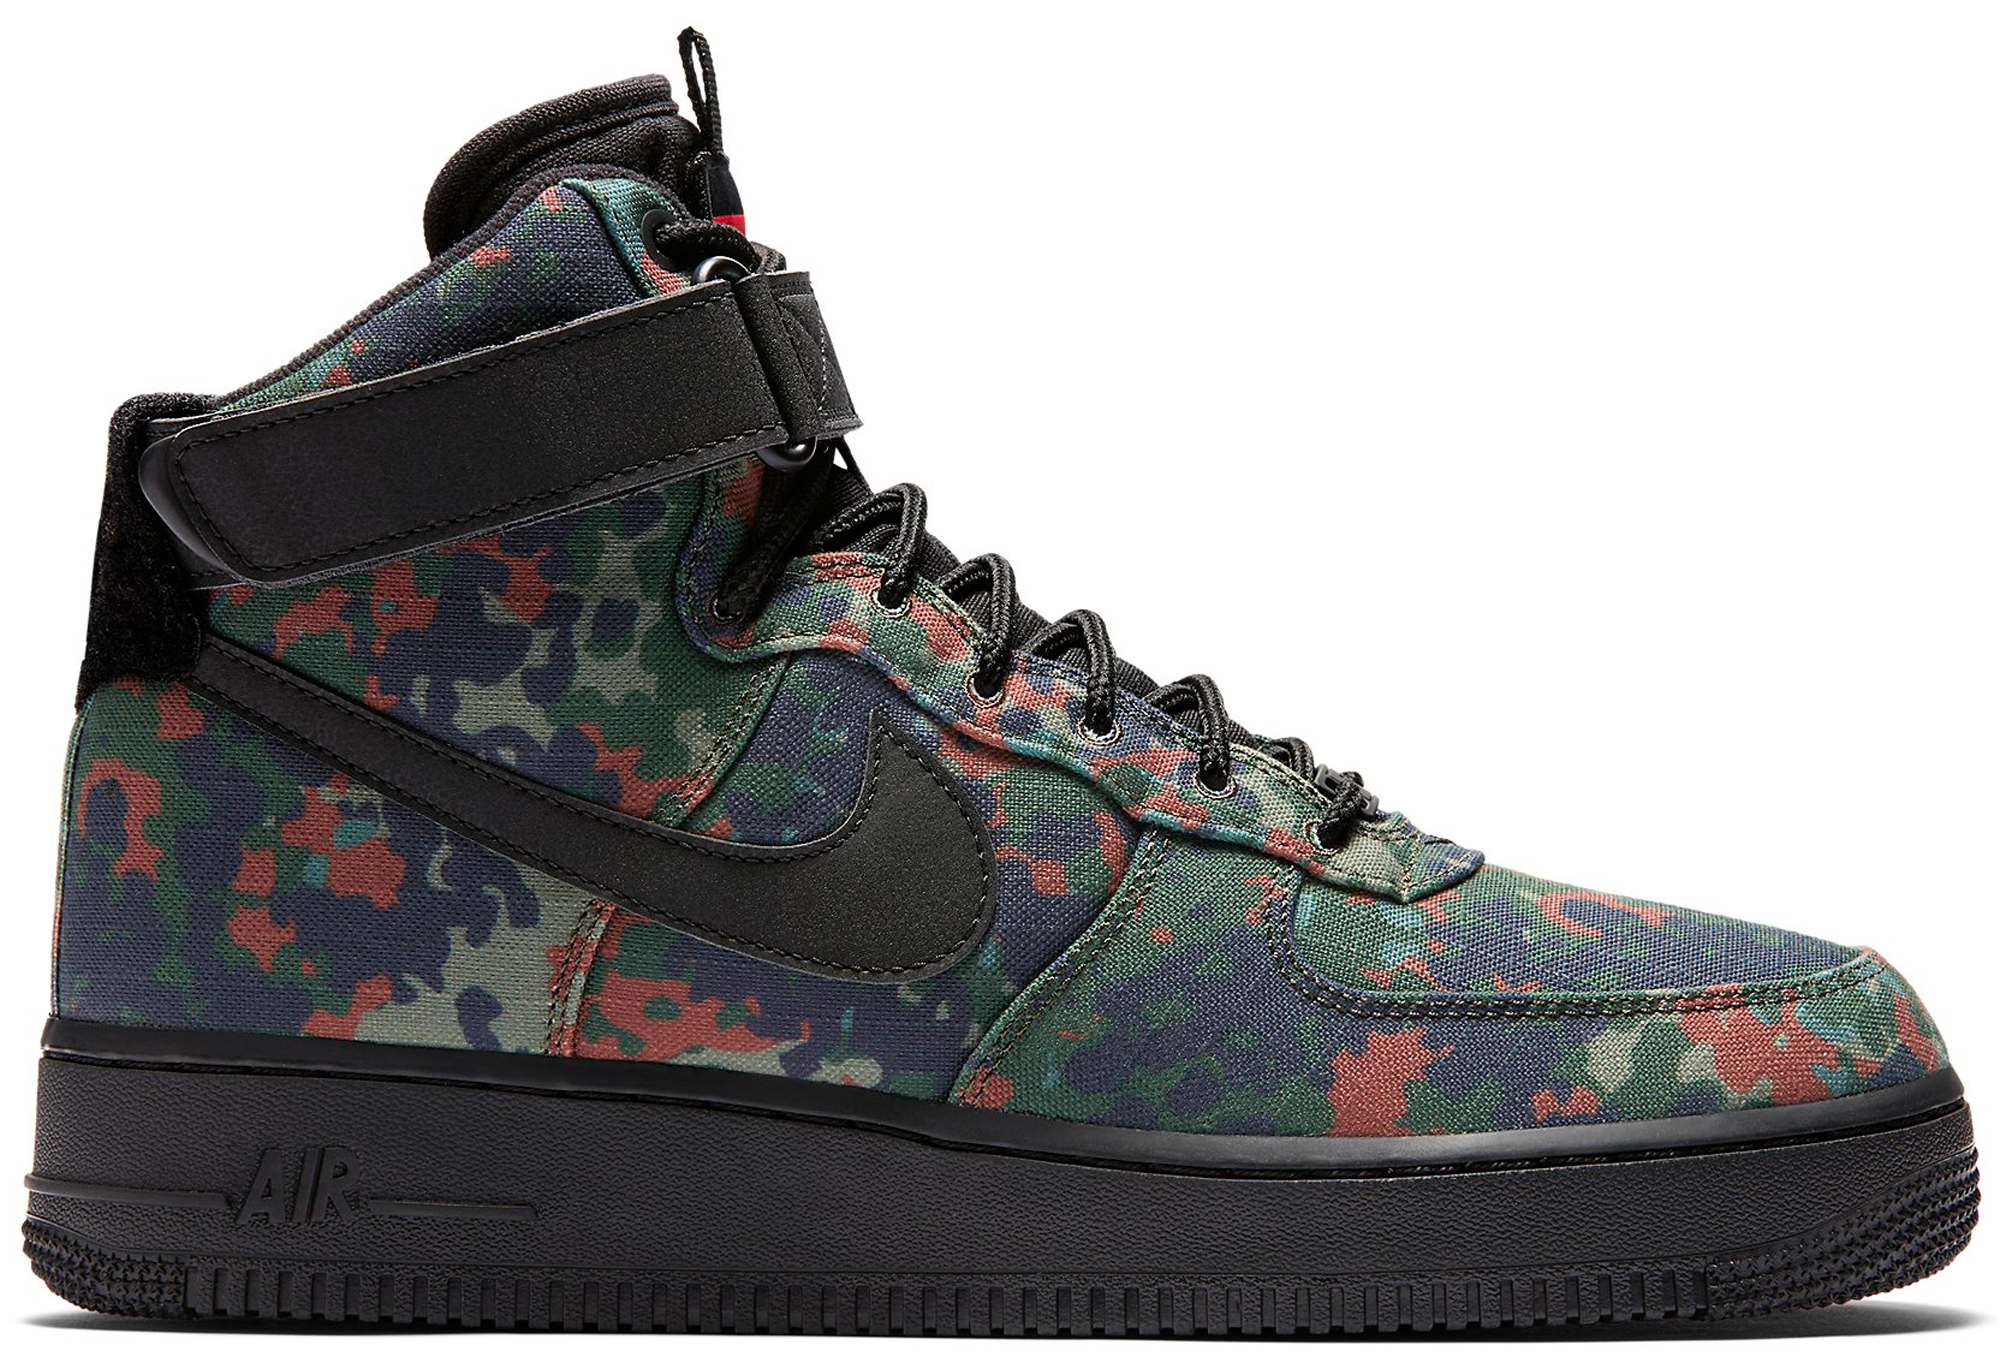 Air Force 1 High Country Camo Germany in Multi-Color/Black